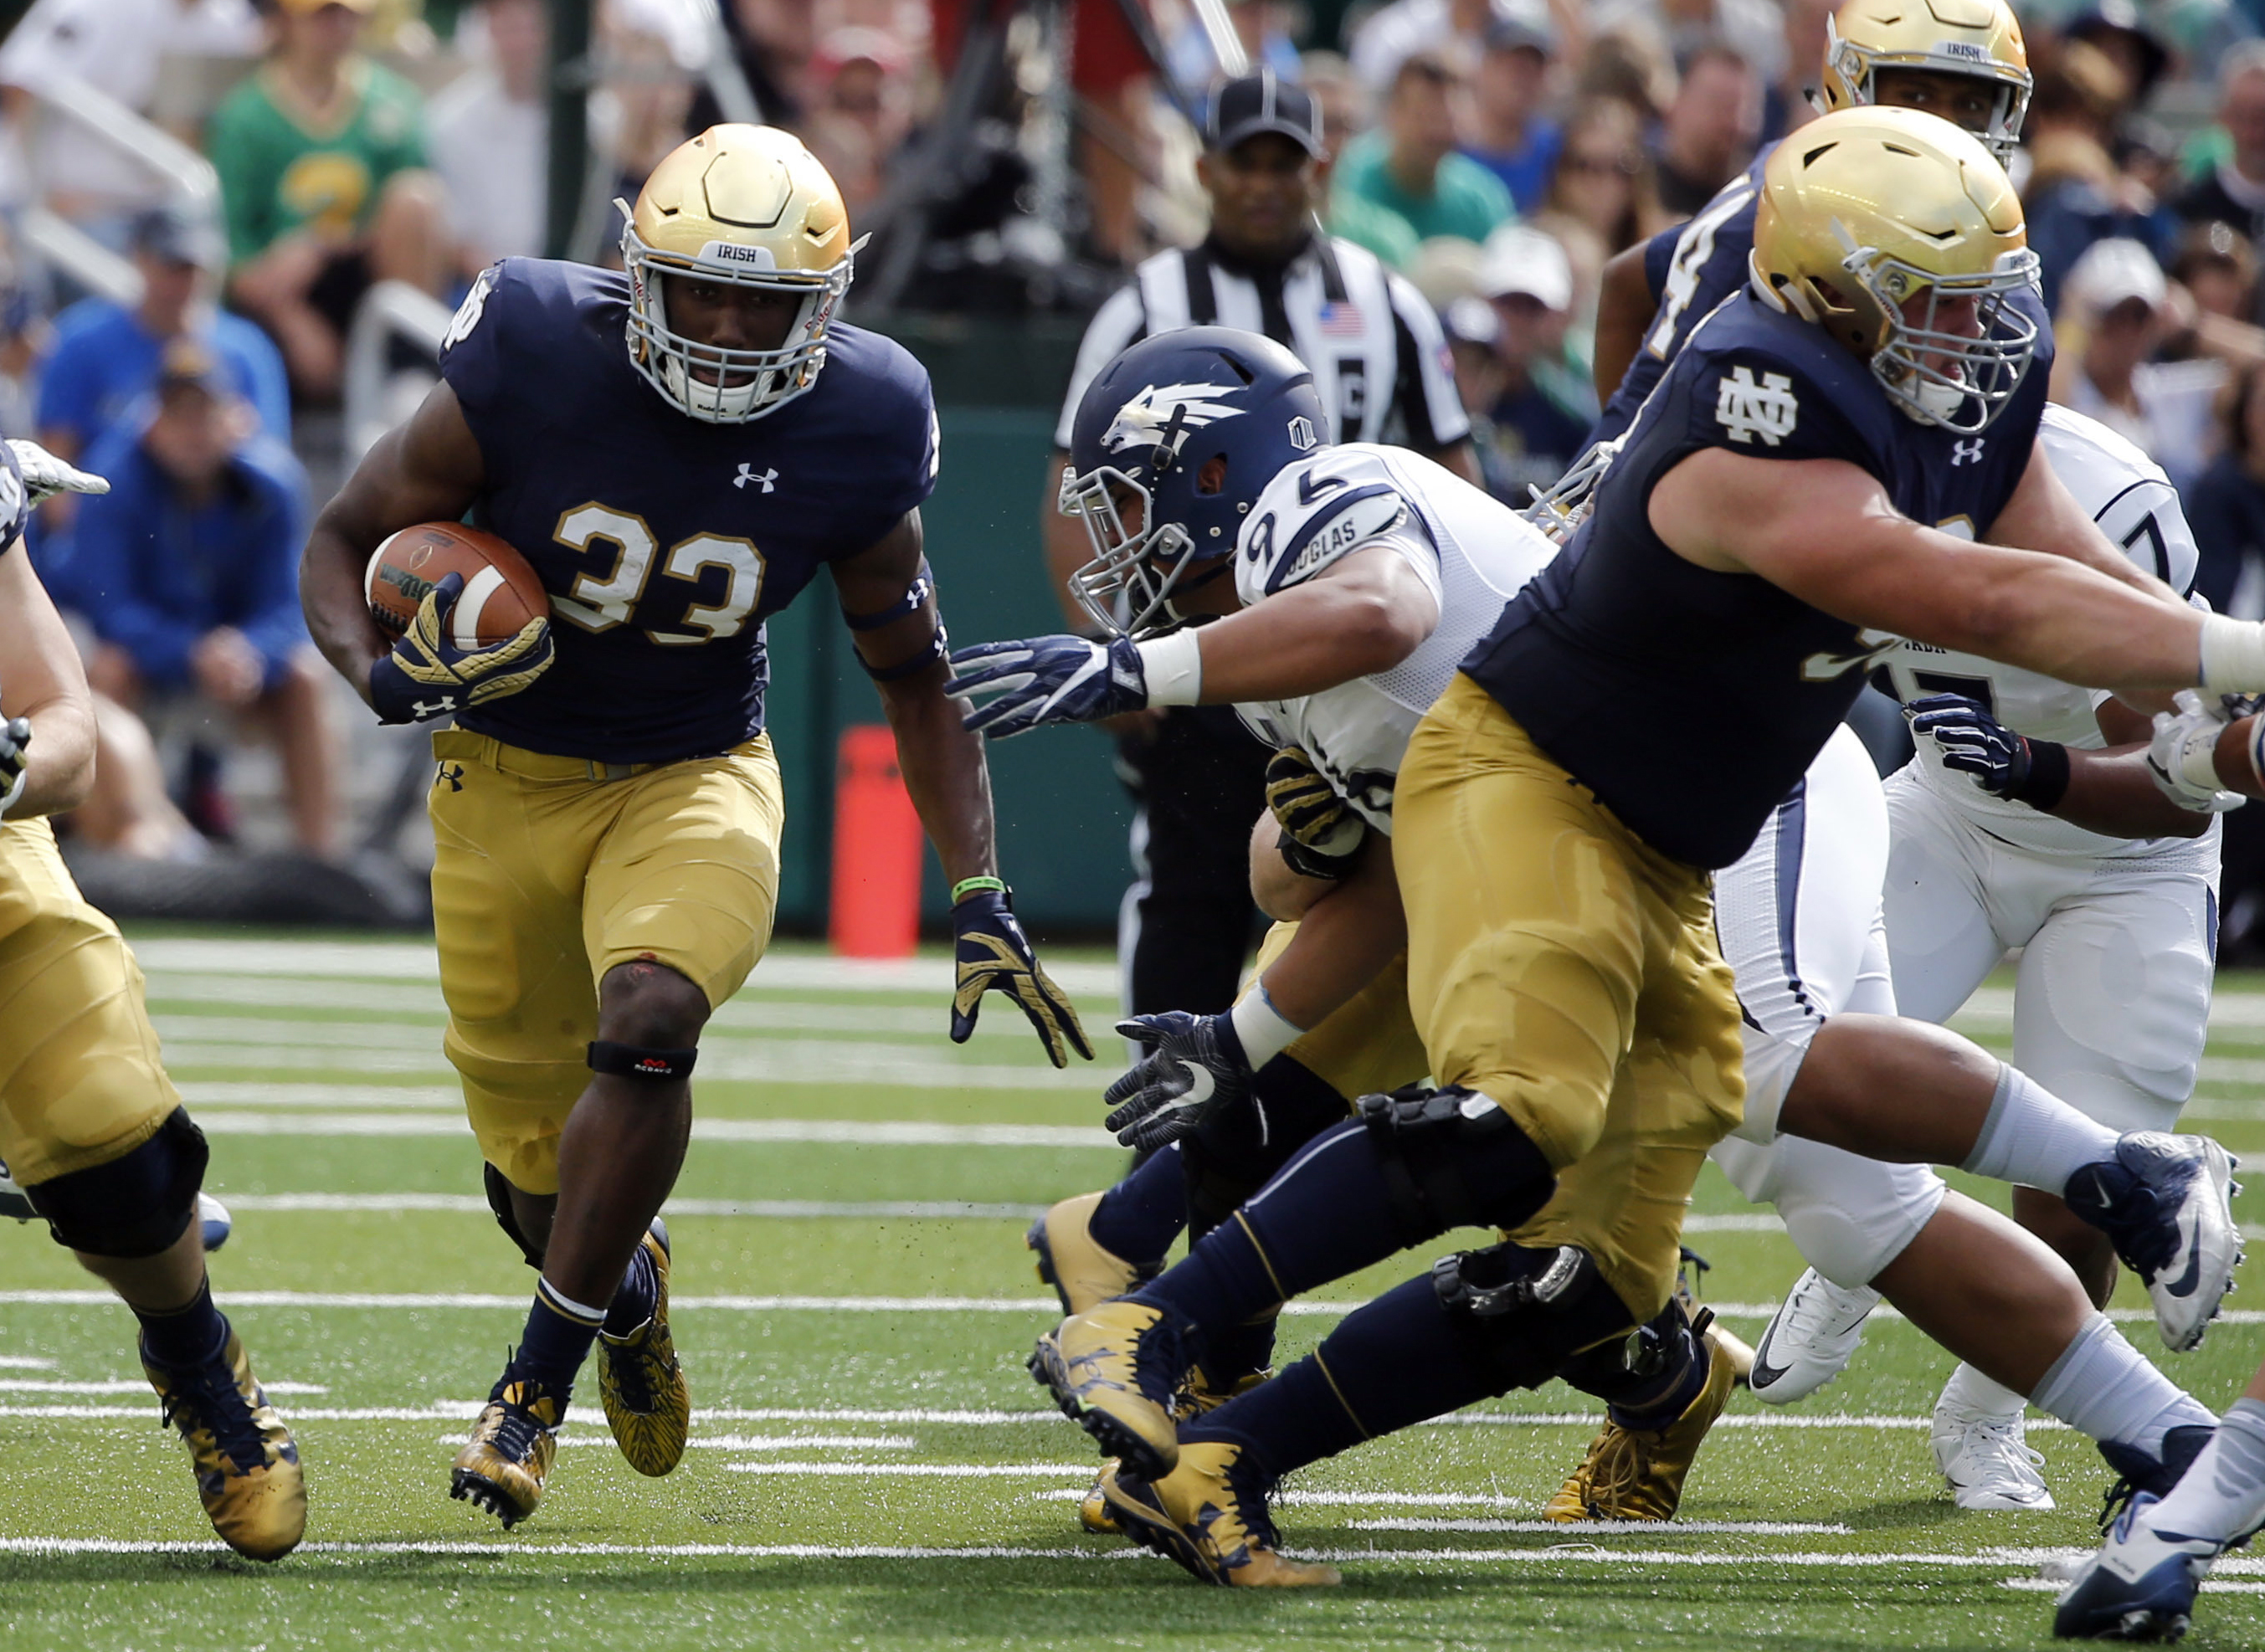 FILE - In this Saturday, Sept. 10, 2016, file photo, Notre Dame running back Josh Adams (33) carries the ball during the first half of an NCAA college football game against Nevada in South Bend, Ind. Adams has tried to help set the tone for the Fighting I